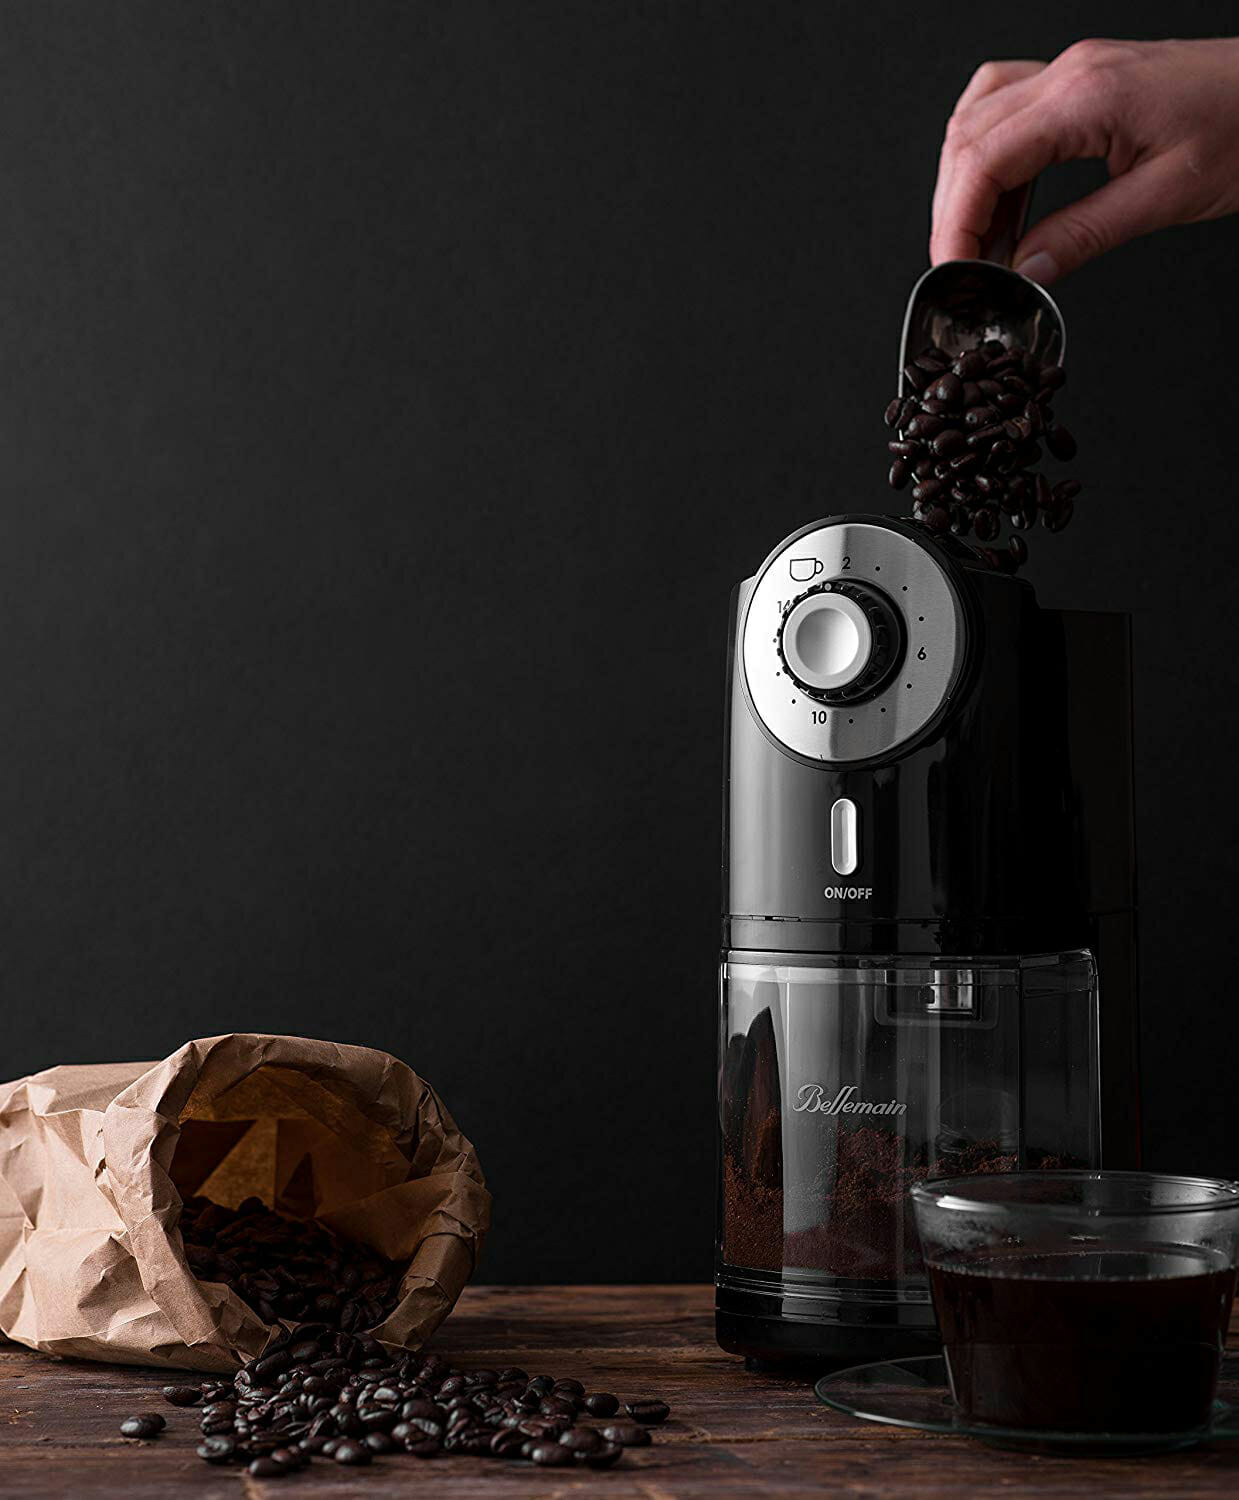 optimizing for french press and drip coffee